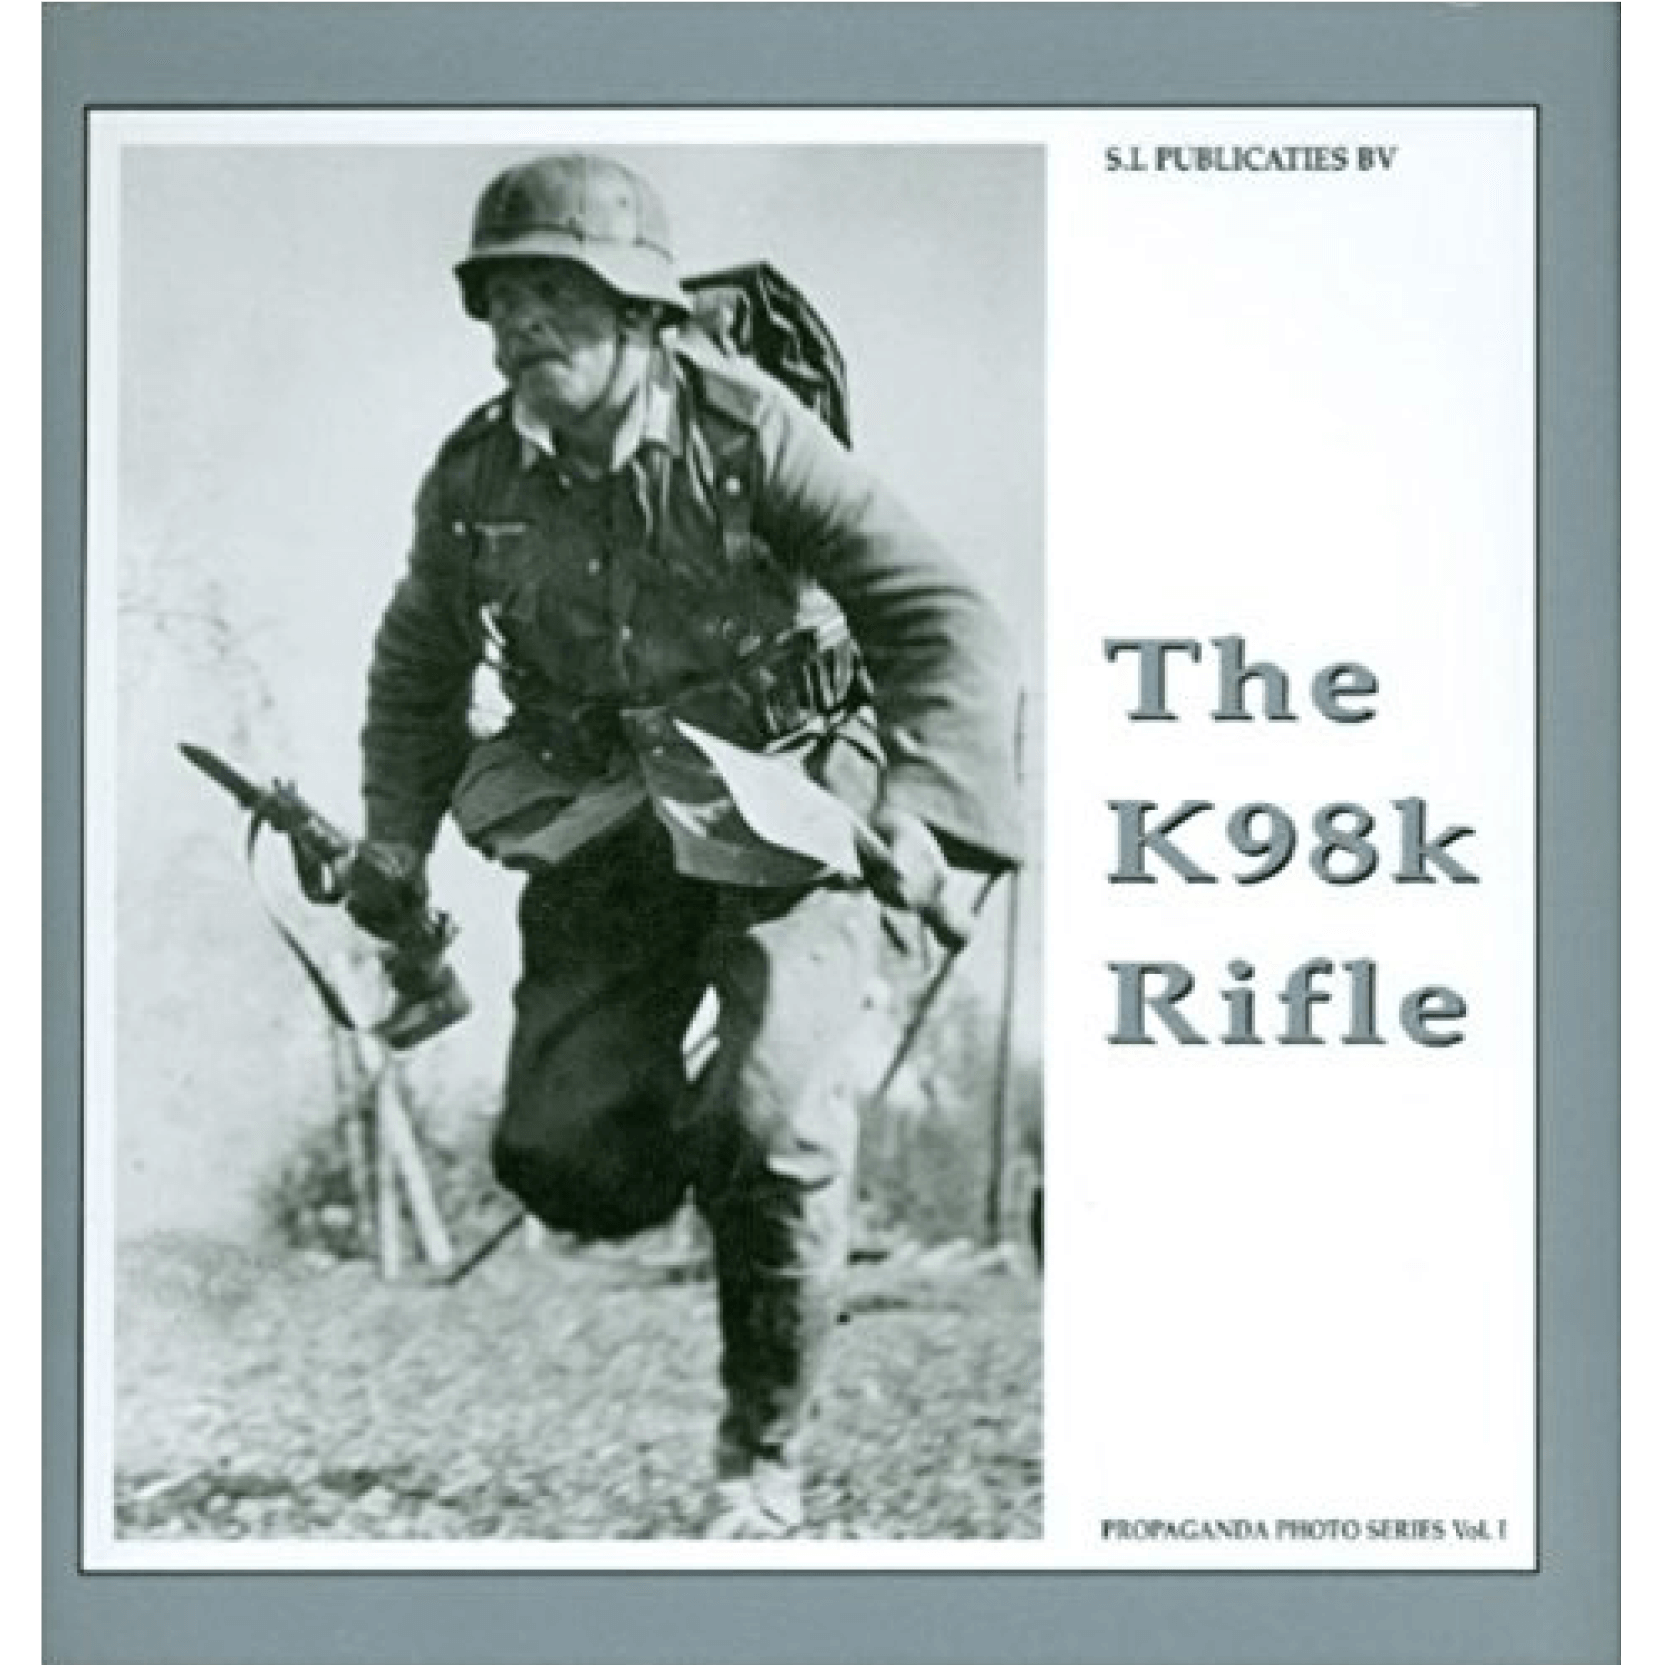 The K98k Rifle